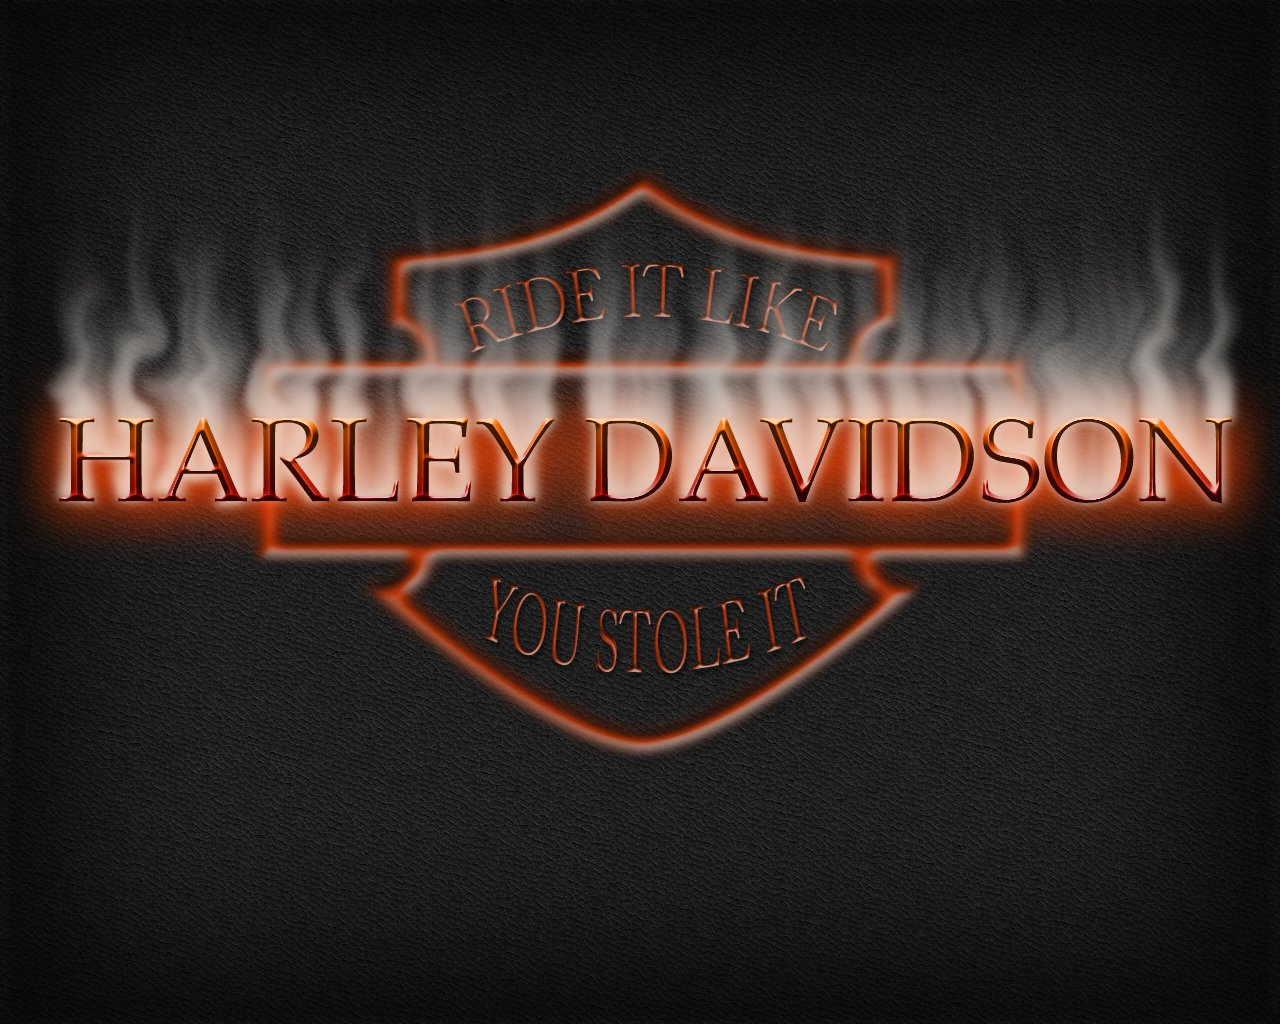 Unofficial Desktop Wallpapers   Harley Davidson Forums 1280x1024